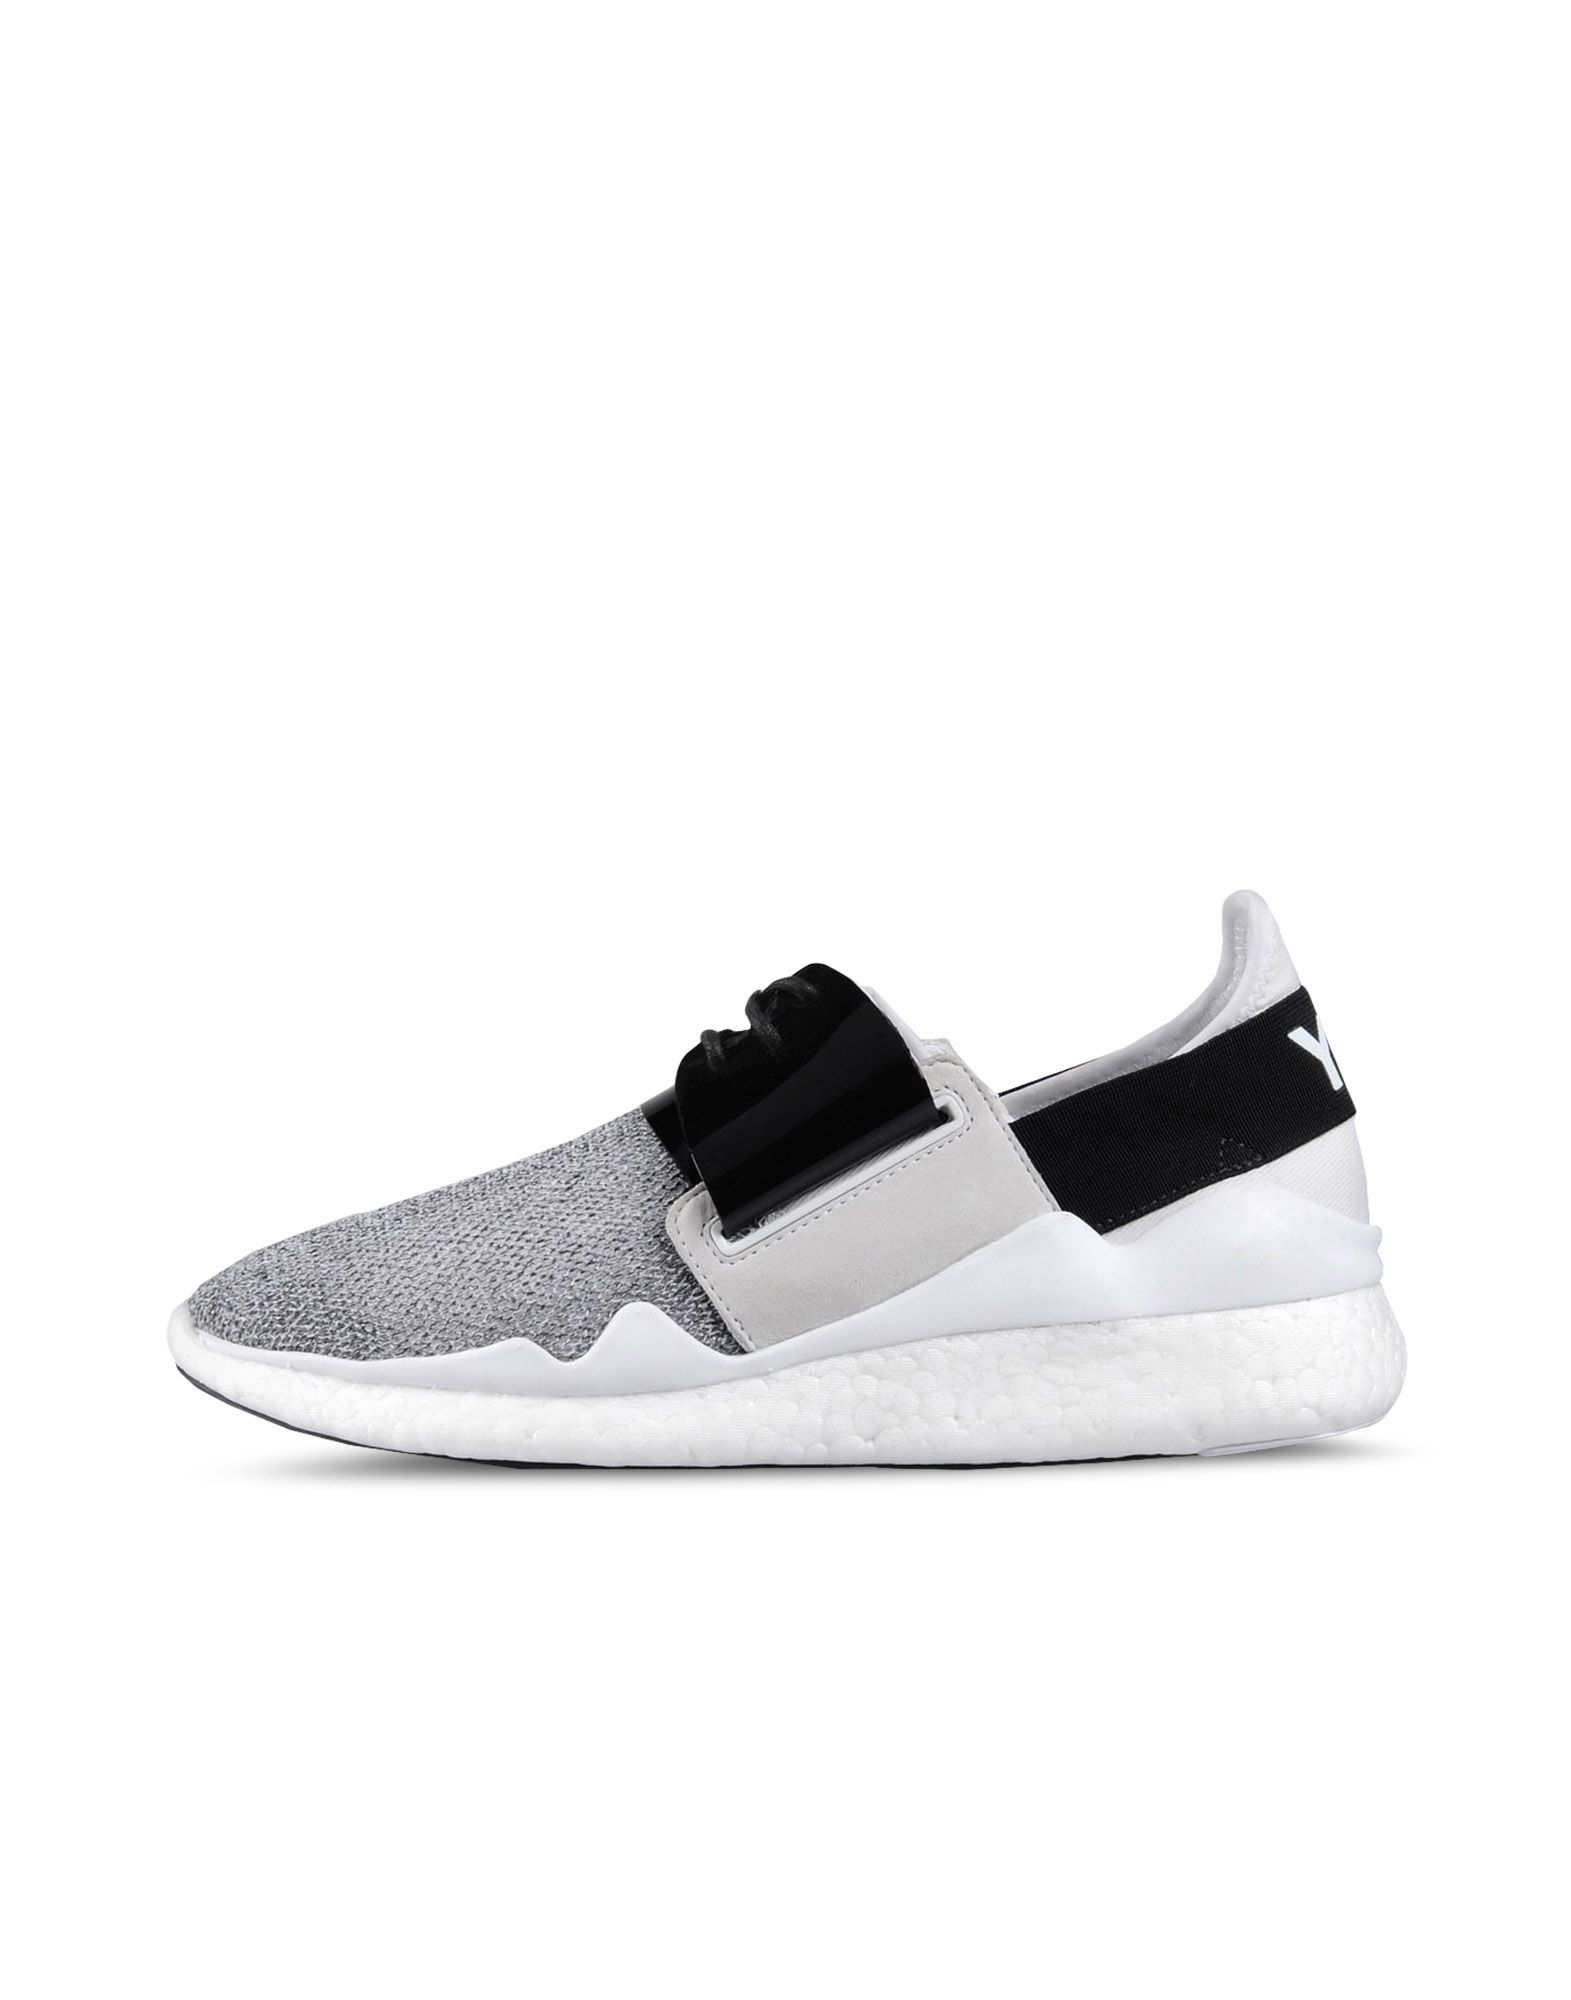 faf0e8a70 Y-3 CHIMU BOOST - Sneakers